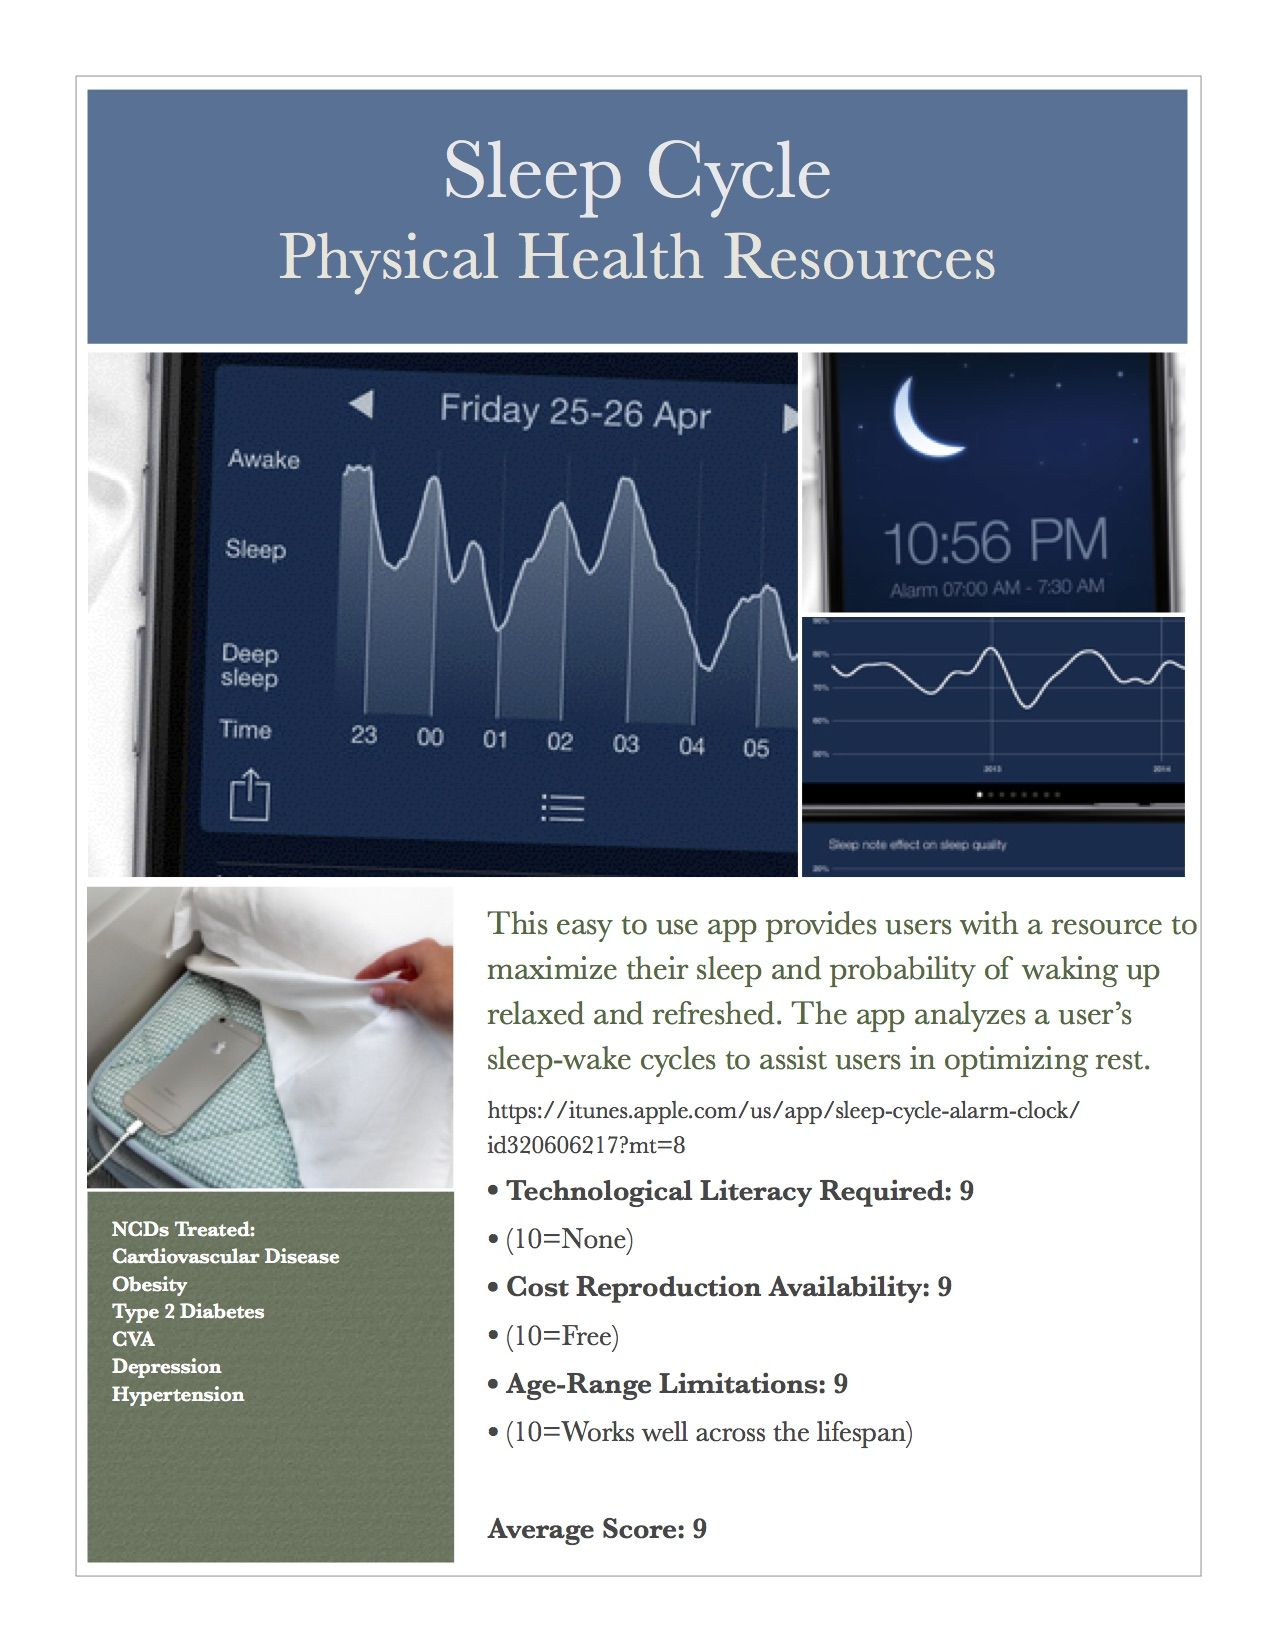 Physical Health Resources Health resources, Physical